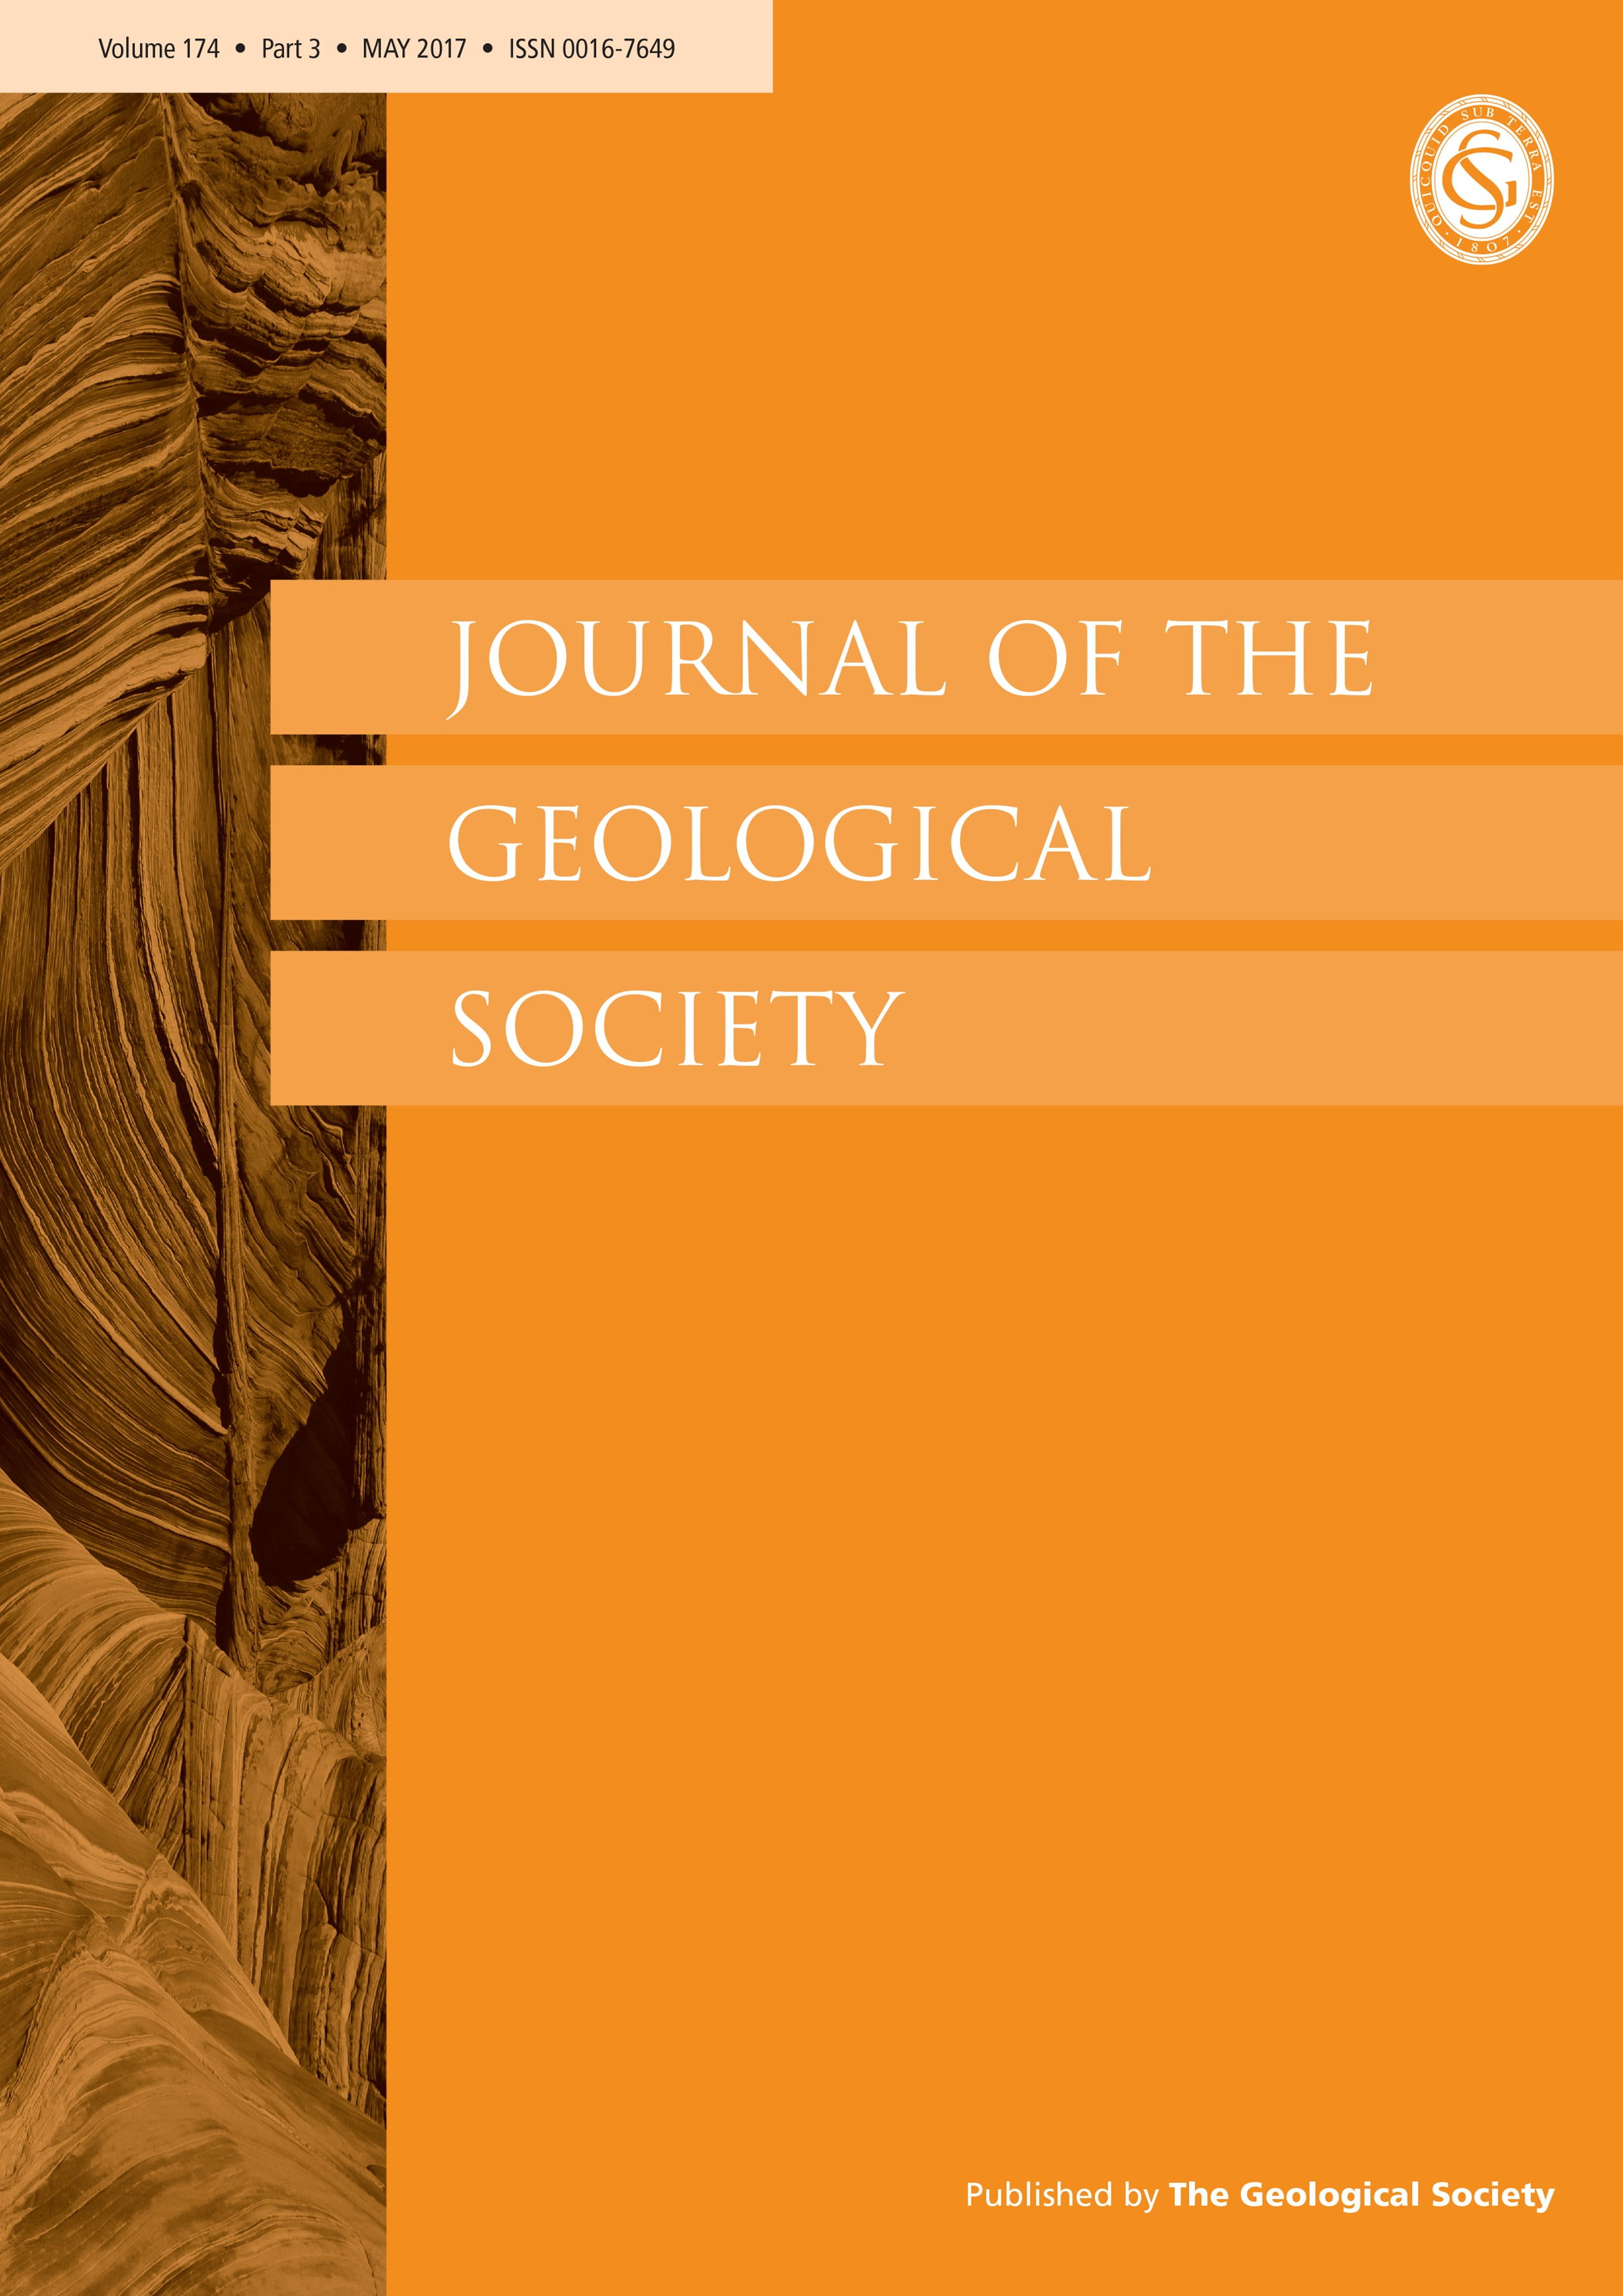 Assessing Sampling Of The Fossil Record In A Geographically And Rg Stratigraphically Constrained Dataset Chalk Group Hampshire Southern Uk Journal